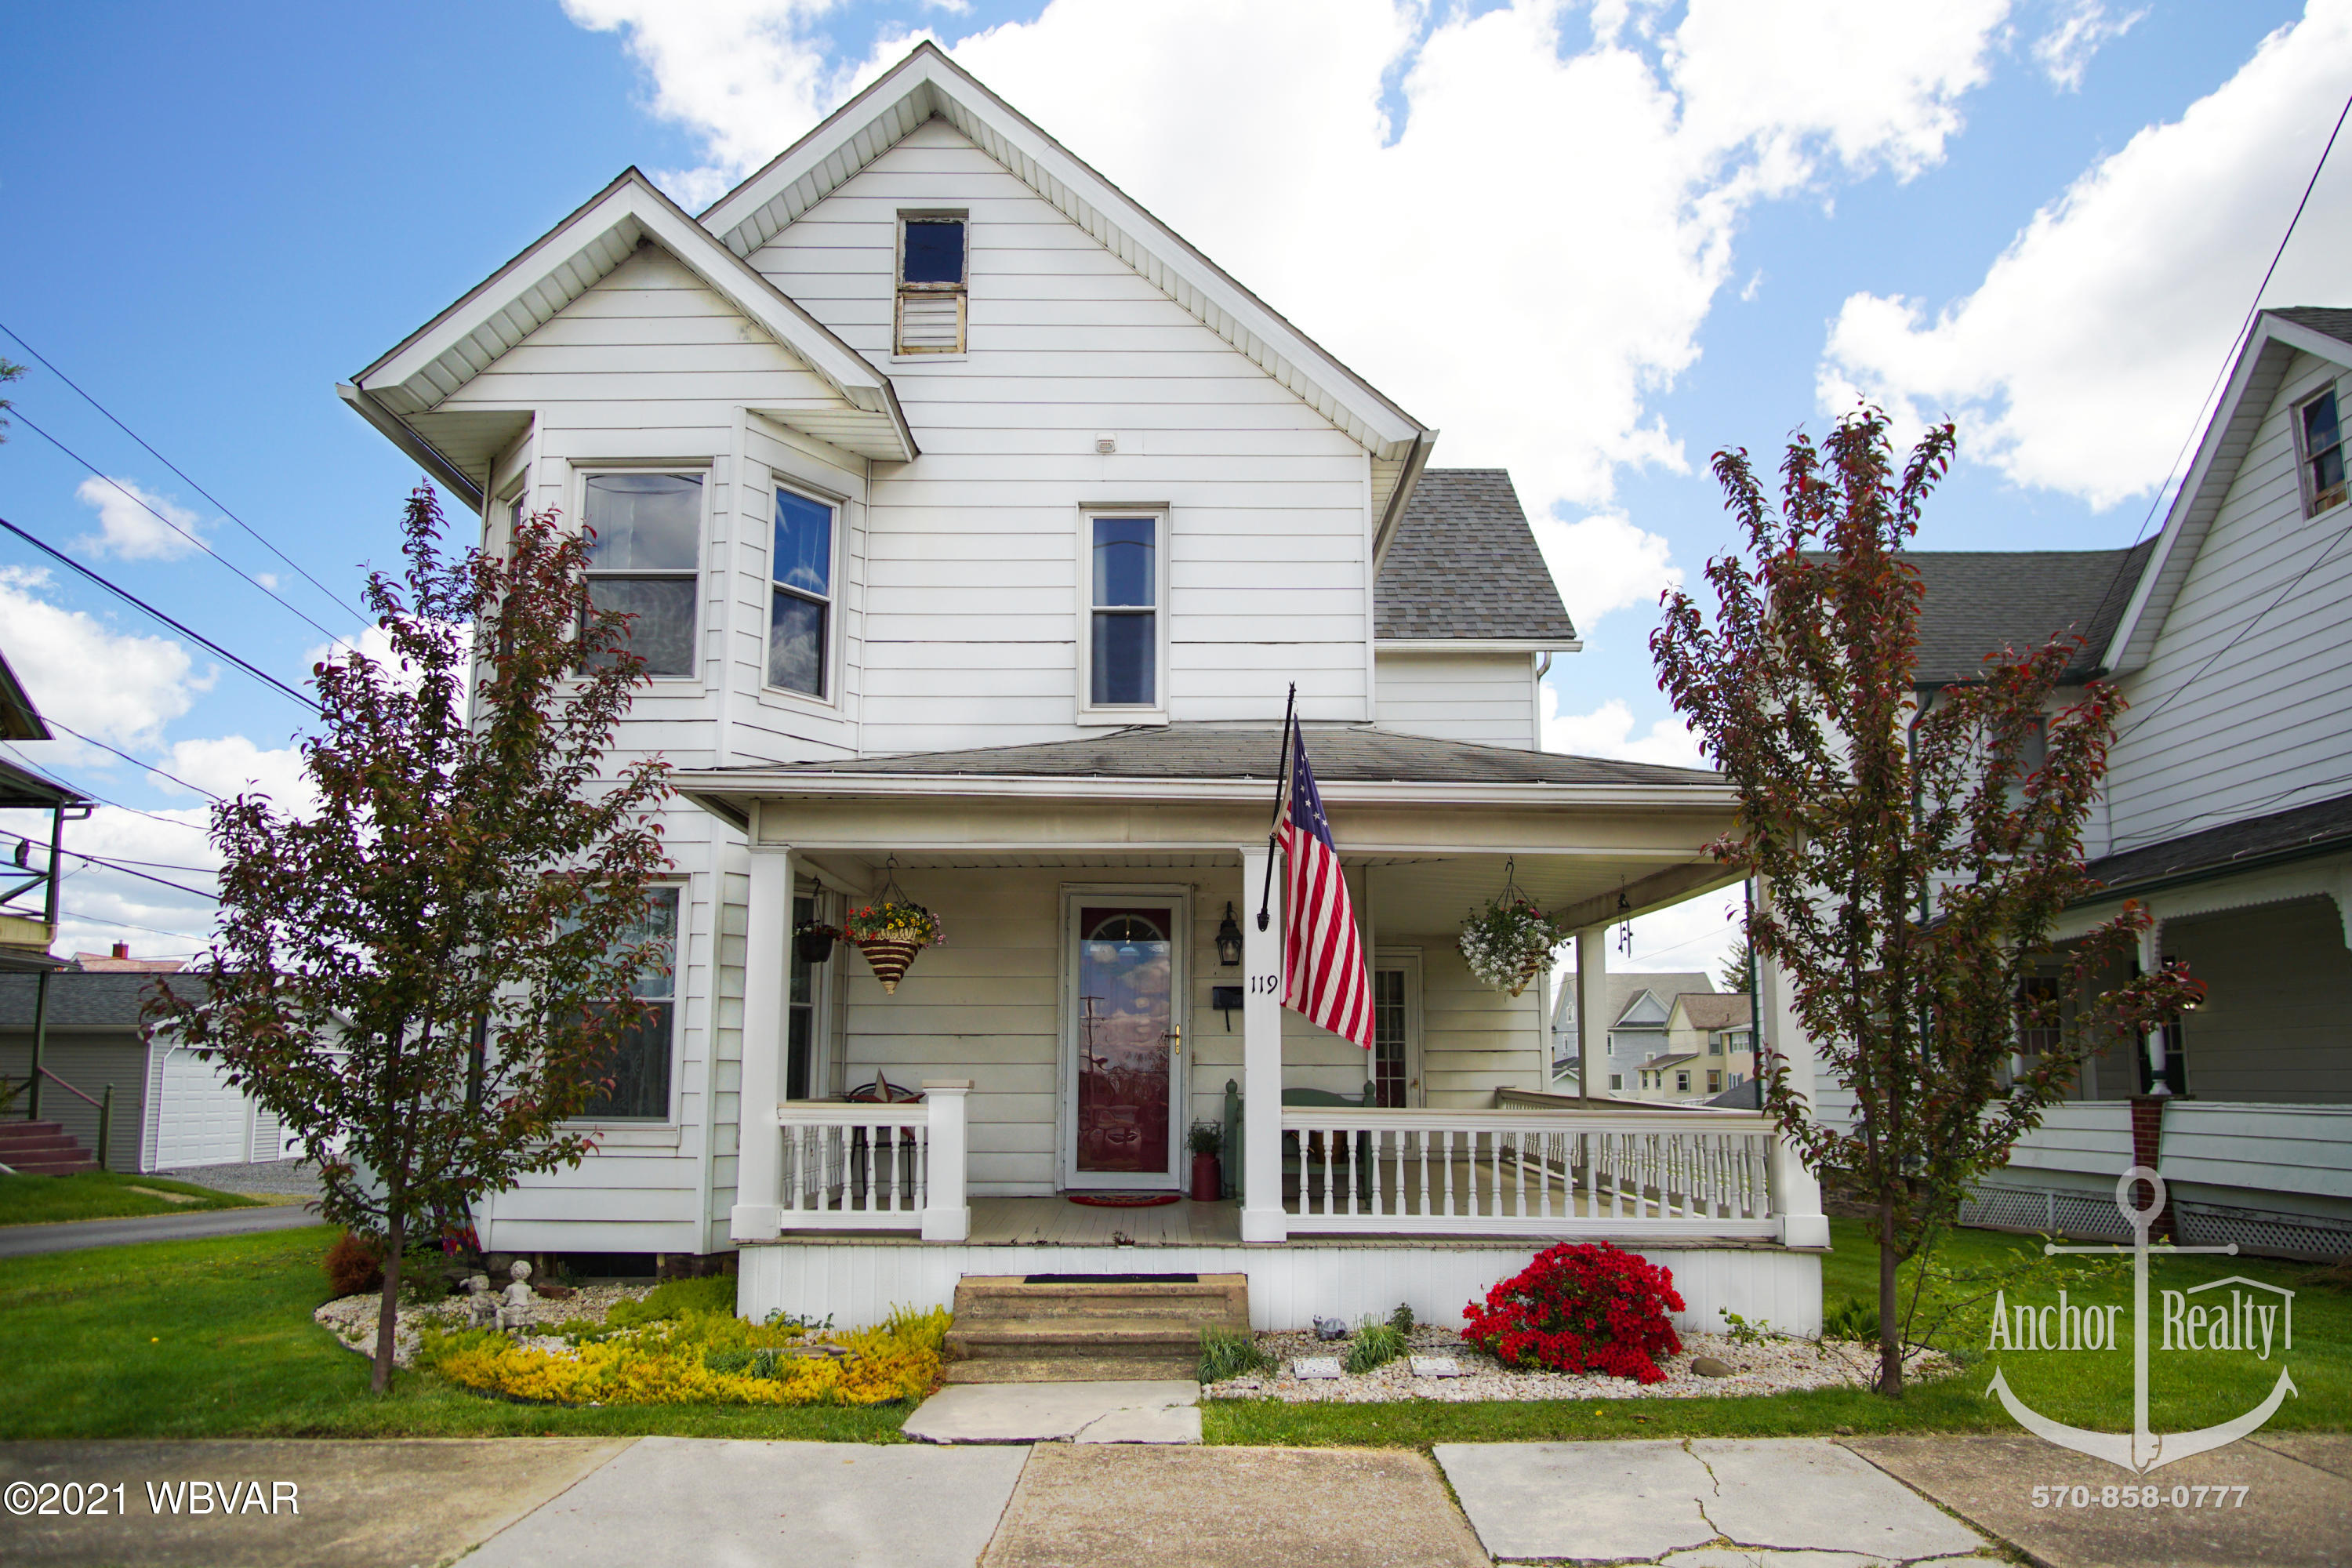 119 OLIVER STREET, Jersey Shore, PA 17740, 4 Bedrooms Bedrooms, ,2.5 BathroomsBathrooms,Residential,For sale,OLIVER,WB-92507